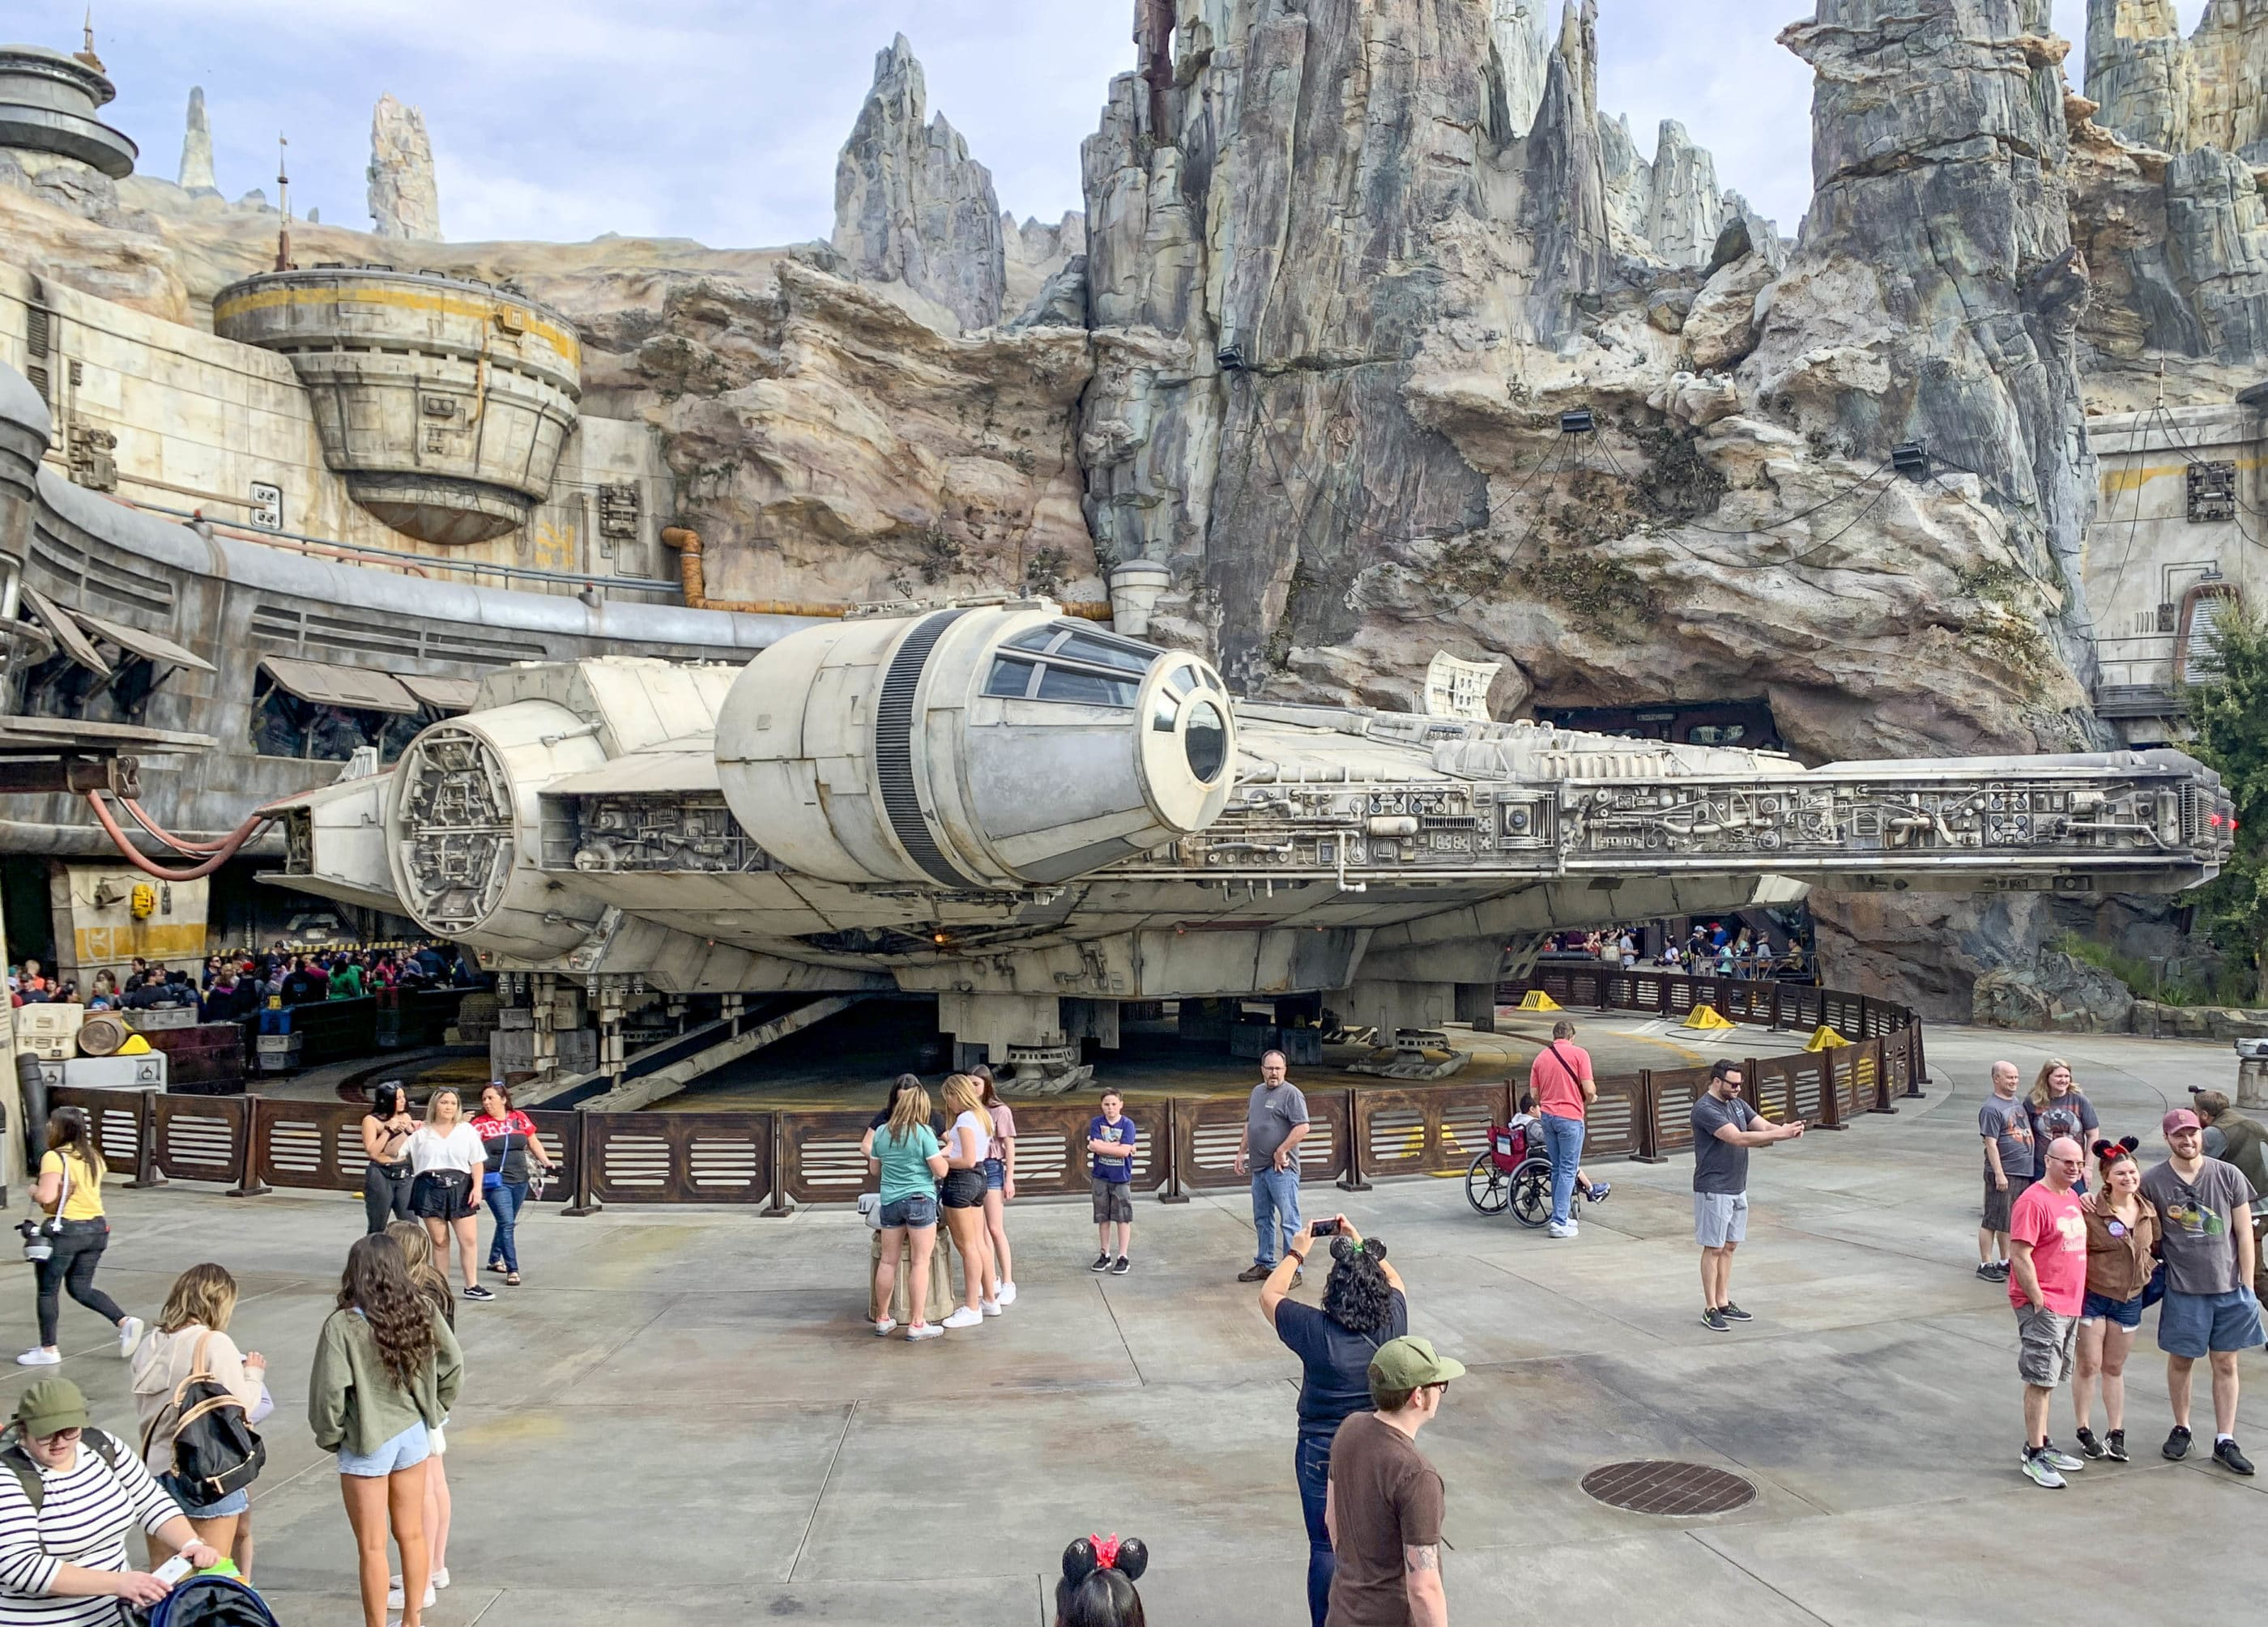 Guests take photos in front of the Millennium Falcon inside of Disneyland's Star Wars: A Galaxy's Edge.